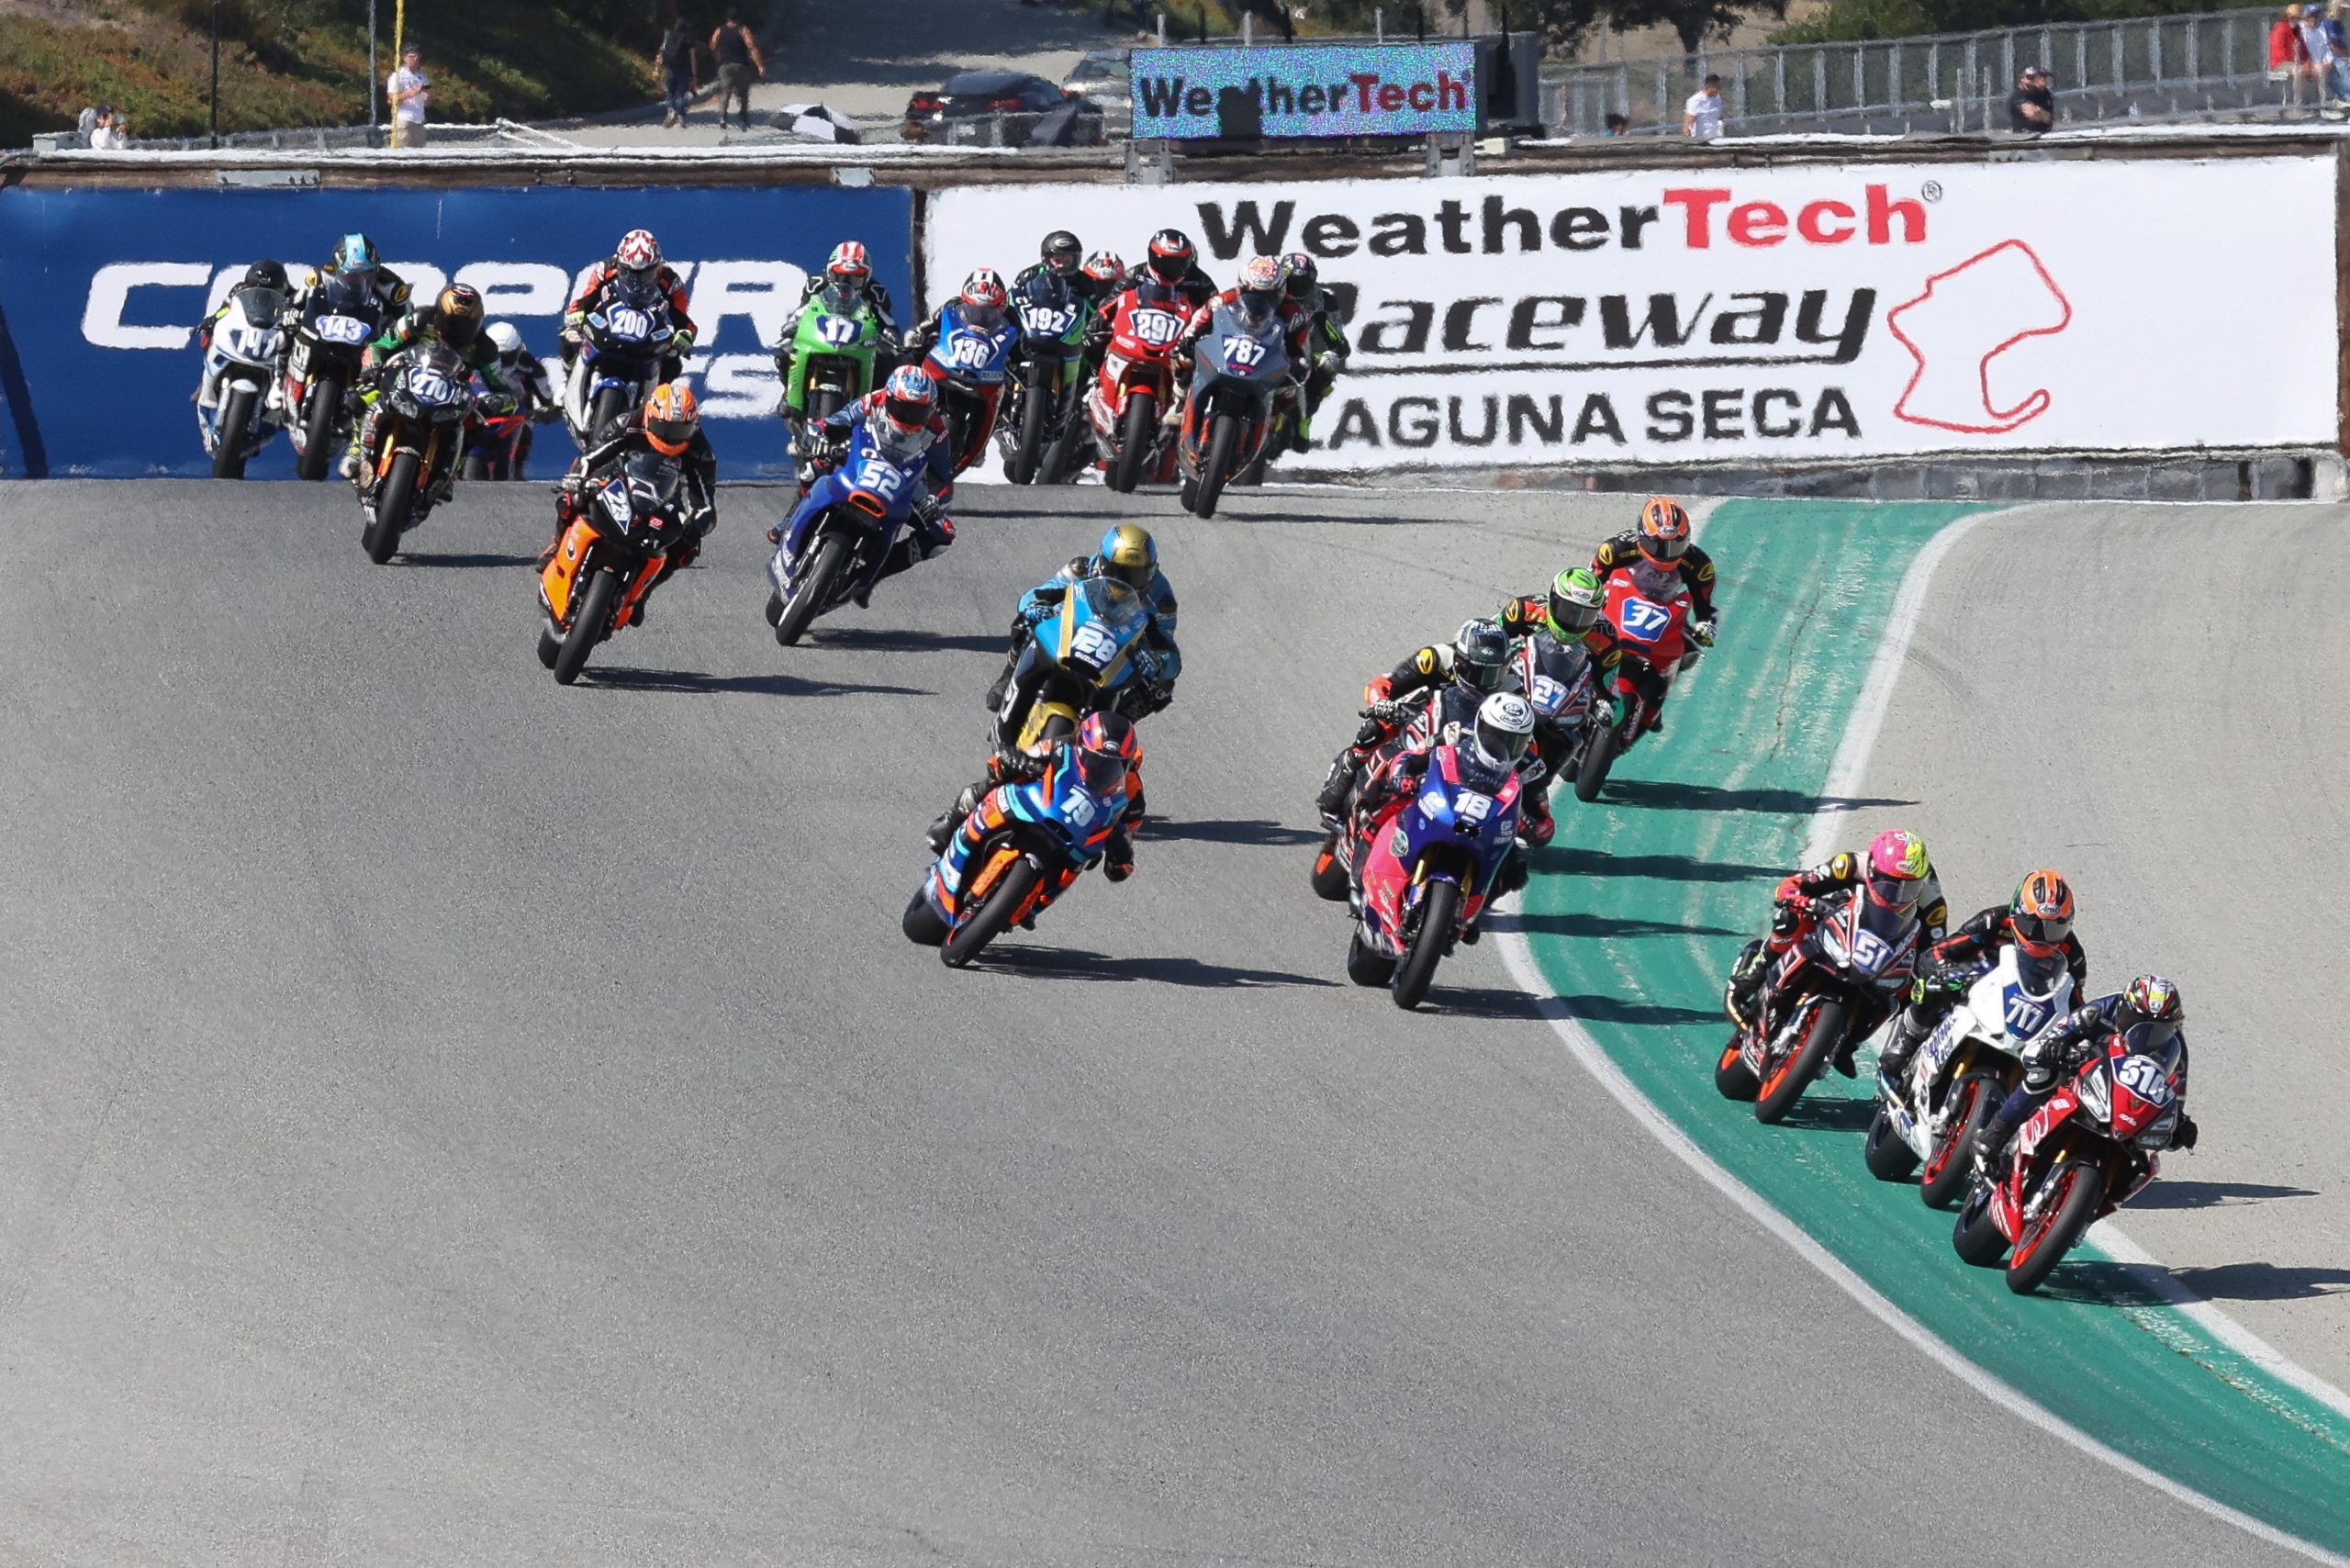 210711 Sean Dylan Kelly (40) won his fourth Supersport race of the season with a win over his rival Richie Escalante (1)